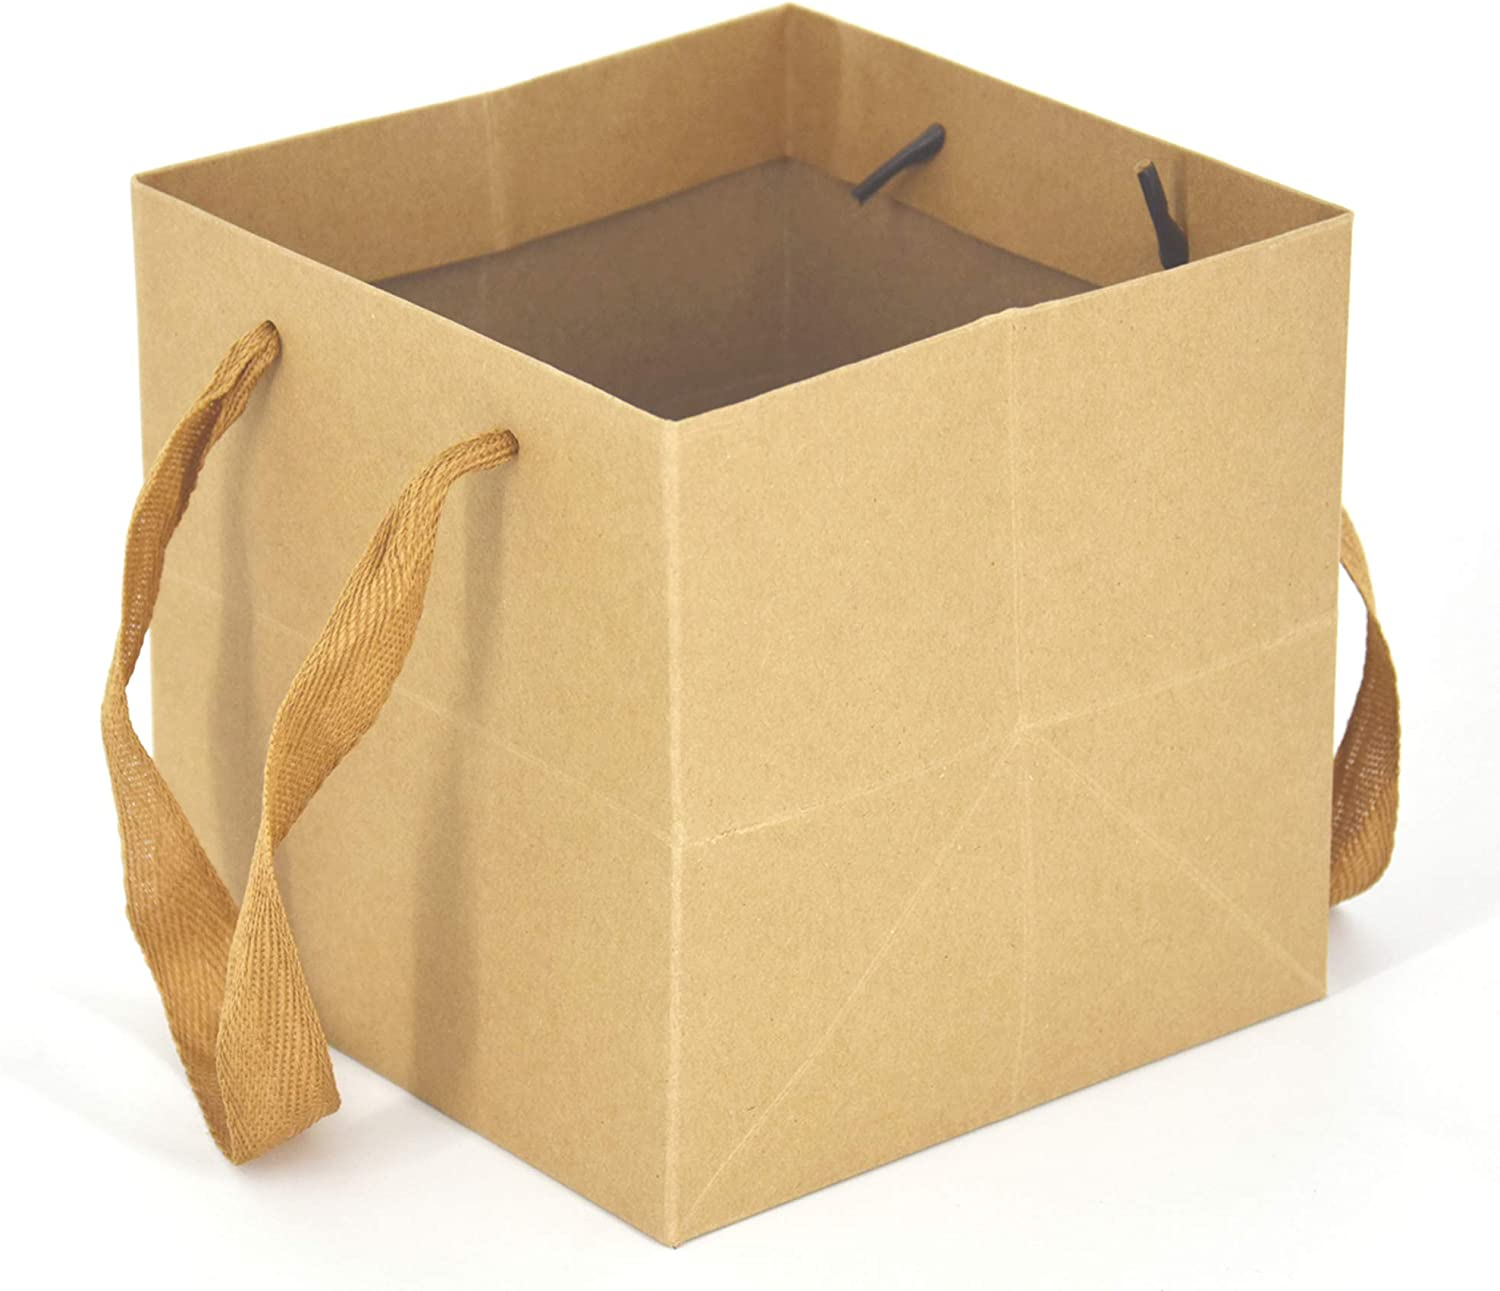 HUAPRINT Kraft Paper Bags,Craft Gift Bags with Handles,24 Packs Brown,6x6x6inch, Heavy Duty Grocery Shopping Bag,Wedding Party Favor Bags,Square Size,Reusable,Retail Business Packaging Bags